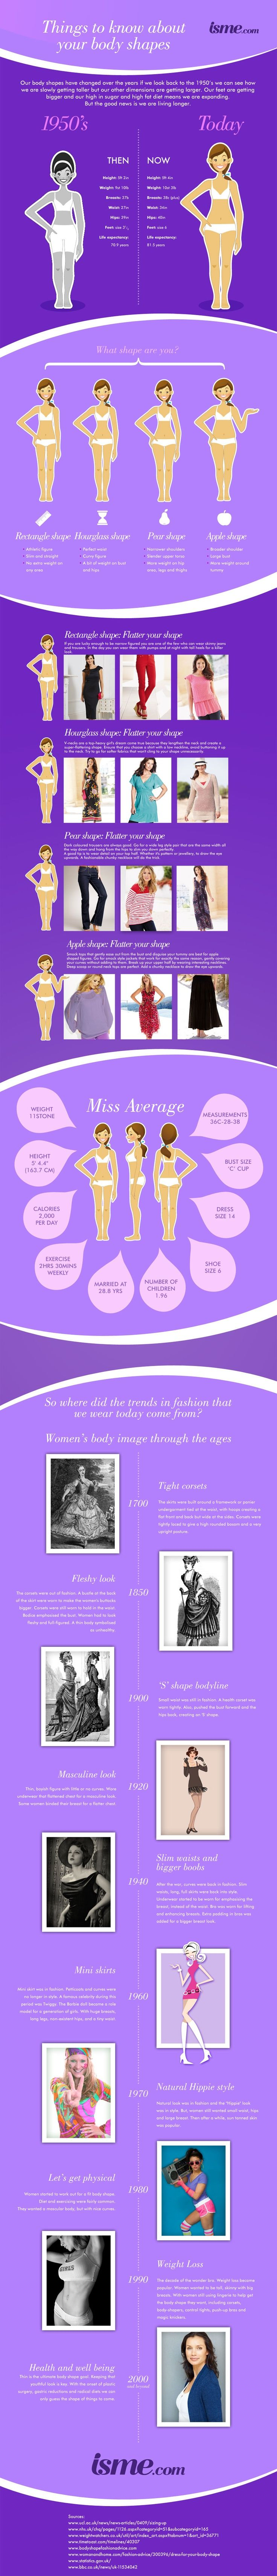 Frugal Friday Fashion Show: Body Shape Inforgraphic How to dress for your body shape and choose the perfect outfit for your shape  | Family Budgeting